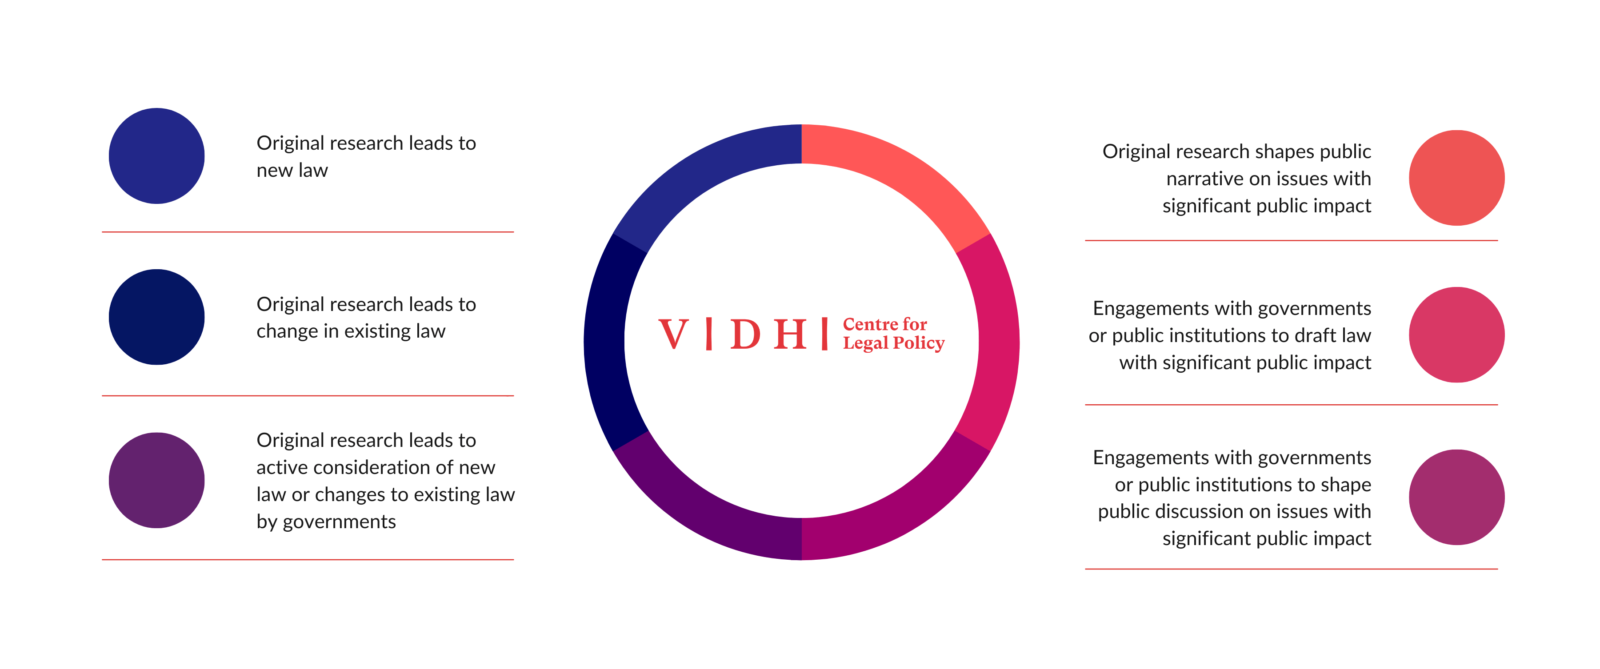 The image shows the different types of impact stages that Vidhi considers in its impact model.